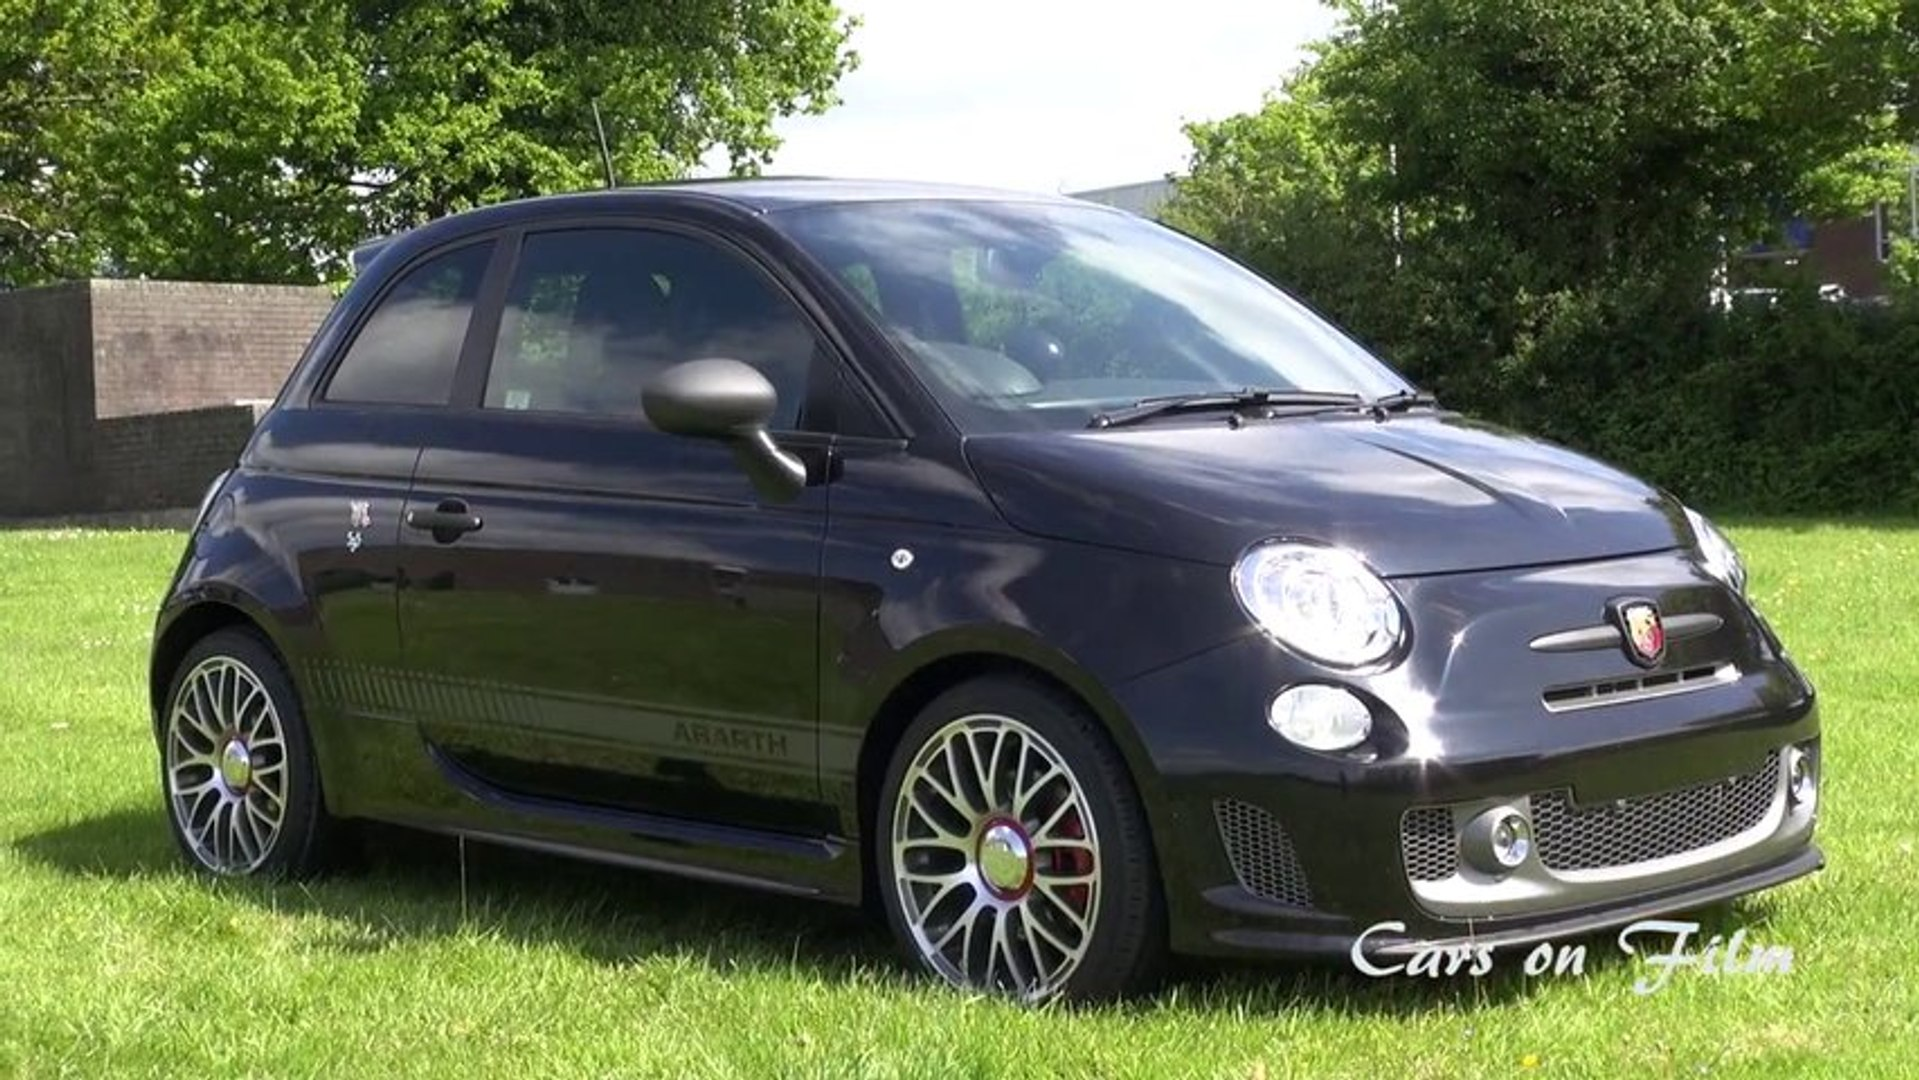 2013 Abarth 595 Turismo in Black with 10 spoke wheels